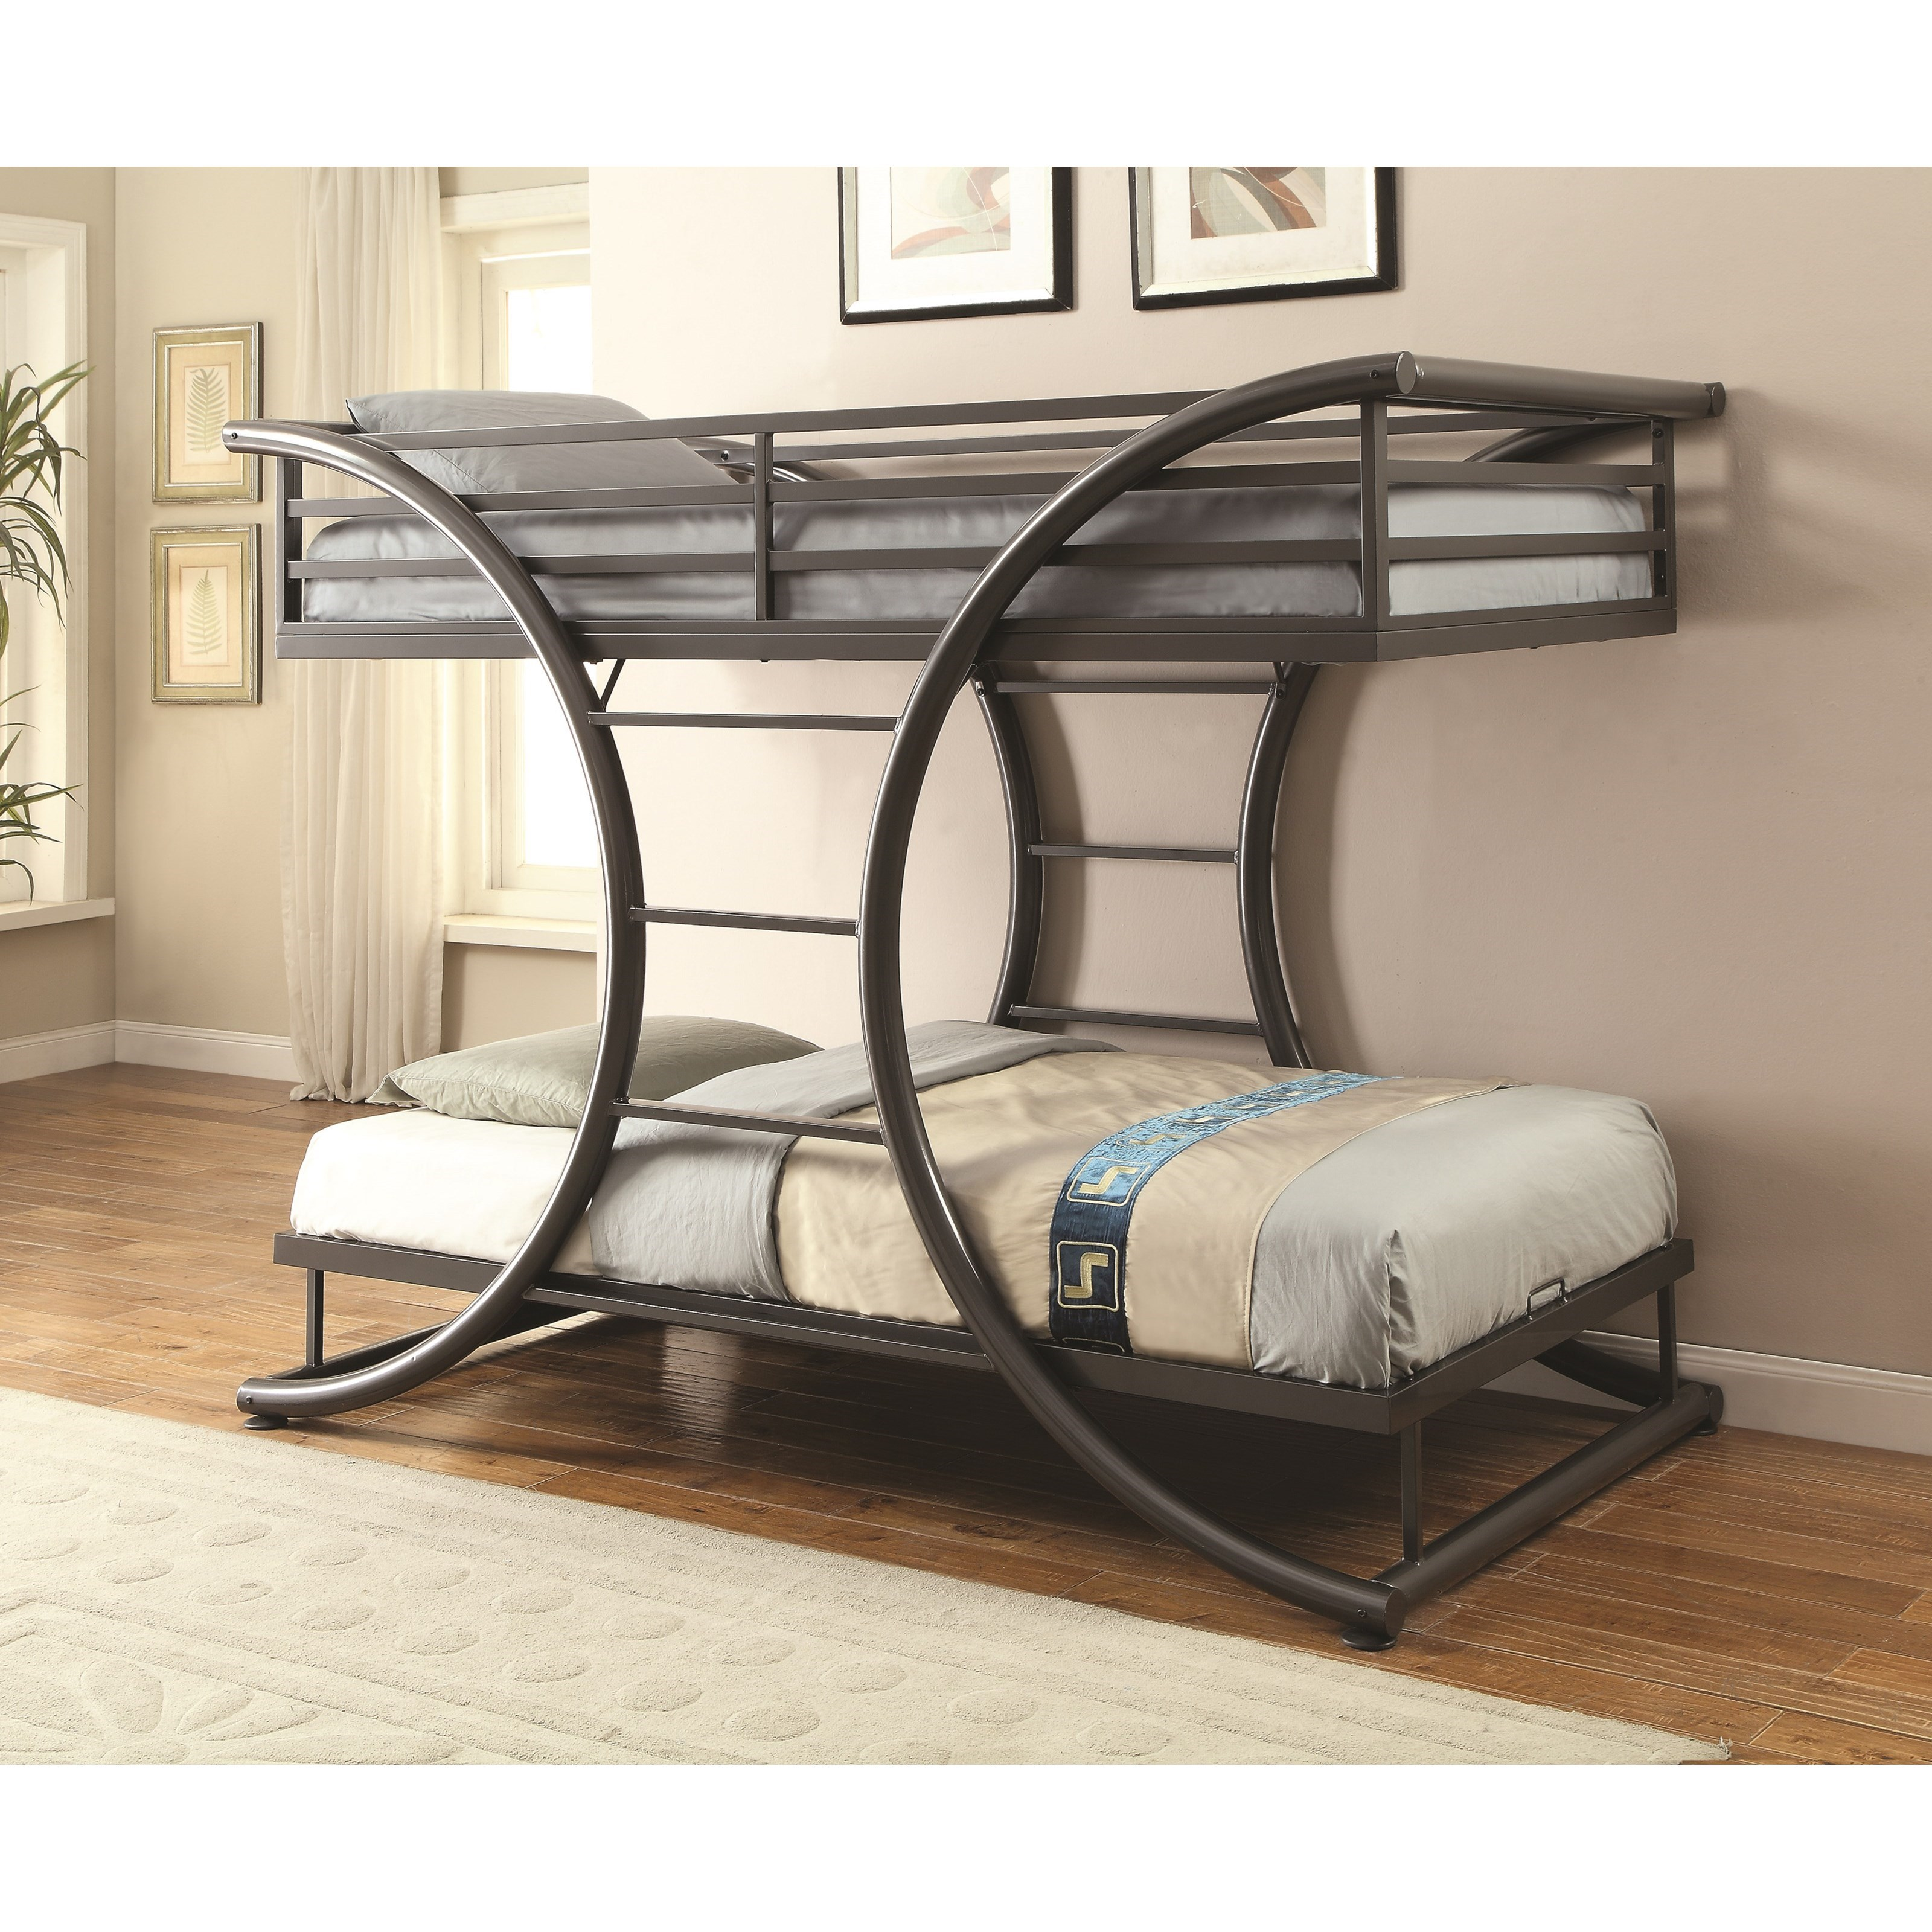 Bunks Twin/Wtin Bunk Bed by Coaster at Corner Furniture